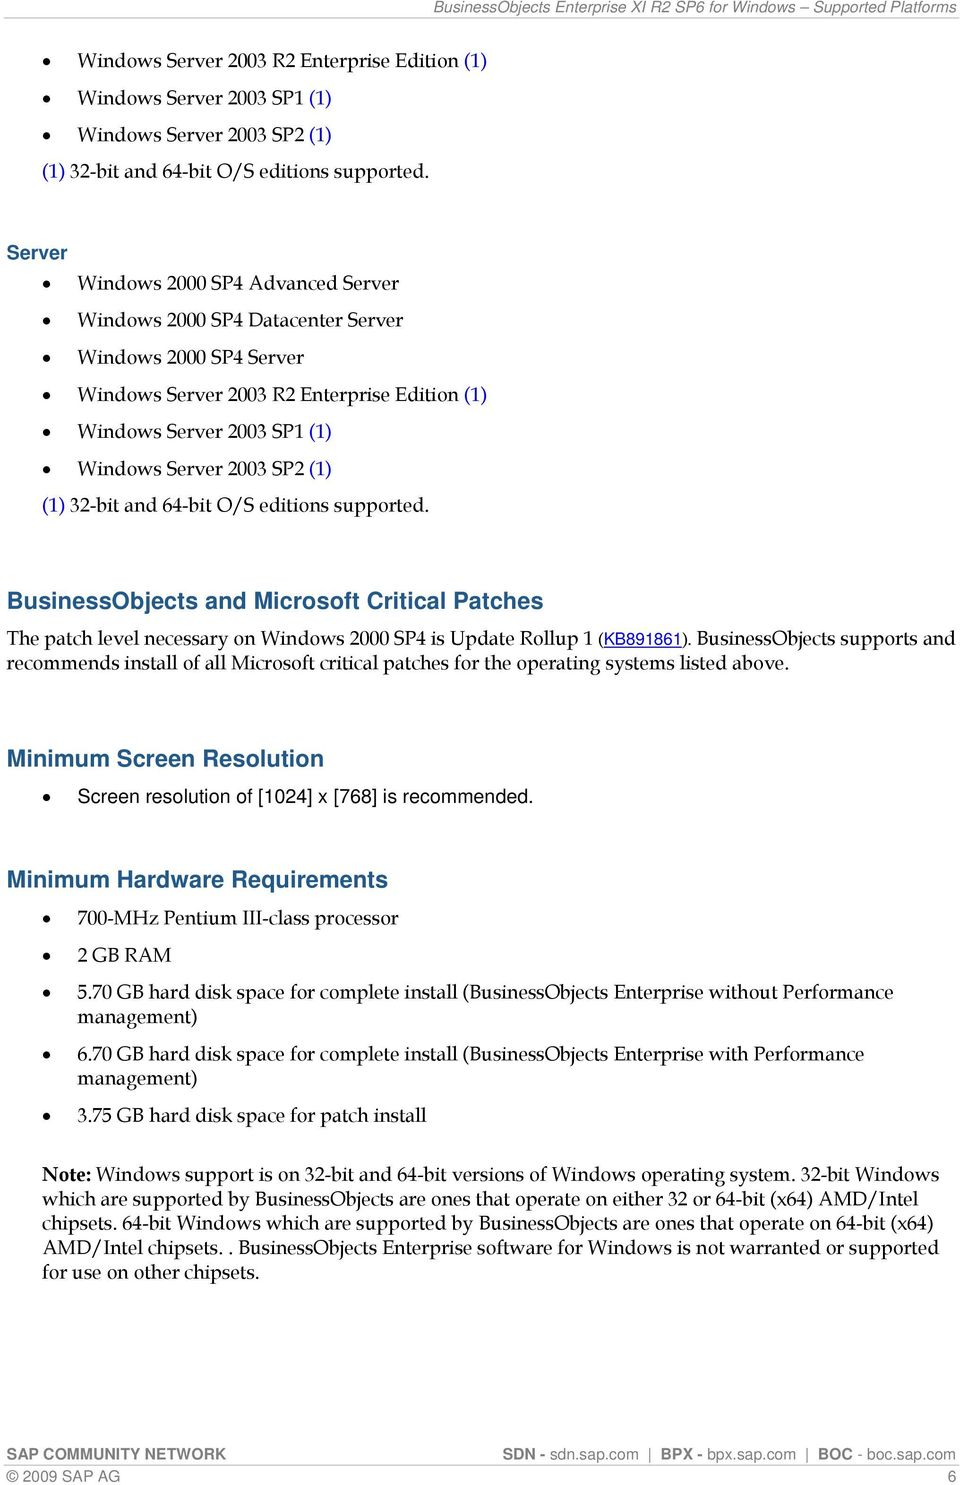 Update Rollup 1 (KB891861). BusinessObjects supports and recommends install of all Microsoft critical patches for the operating systems listed above.